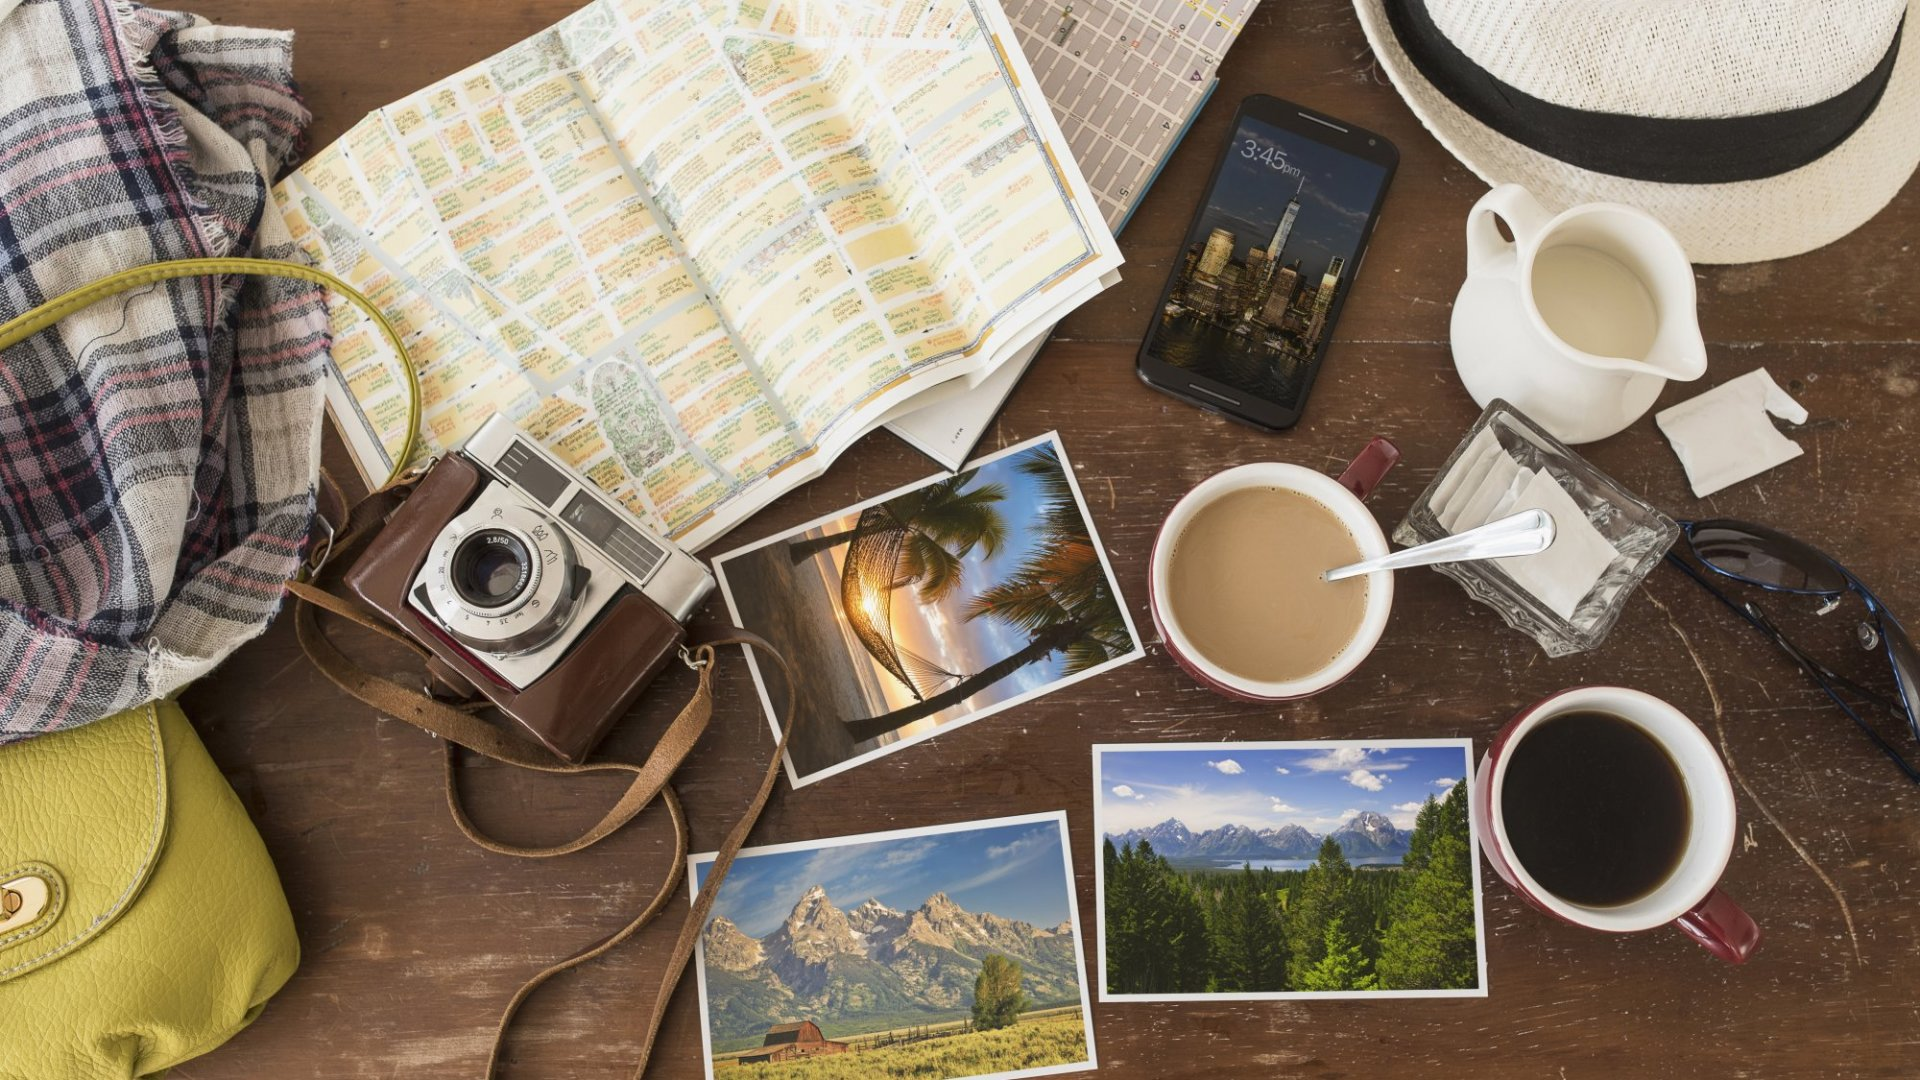 TripAdvisor: Staying Innovative in the Travel Industry